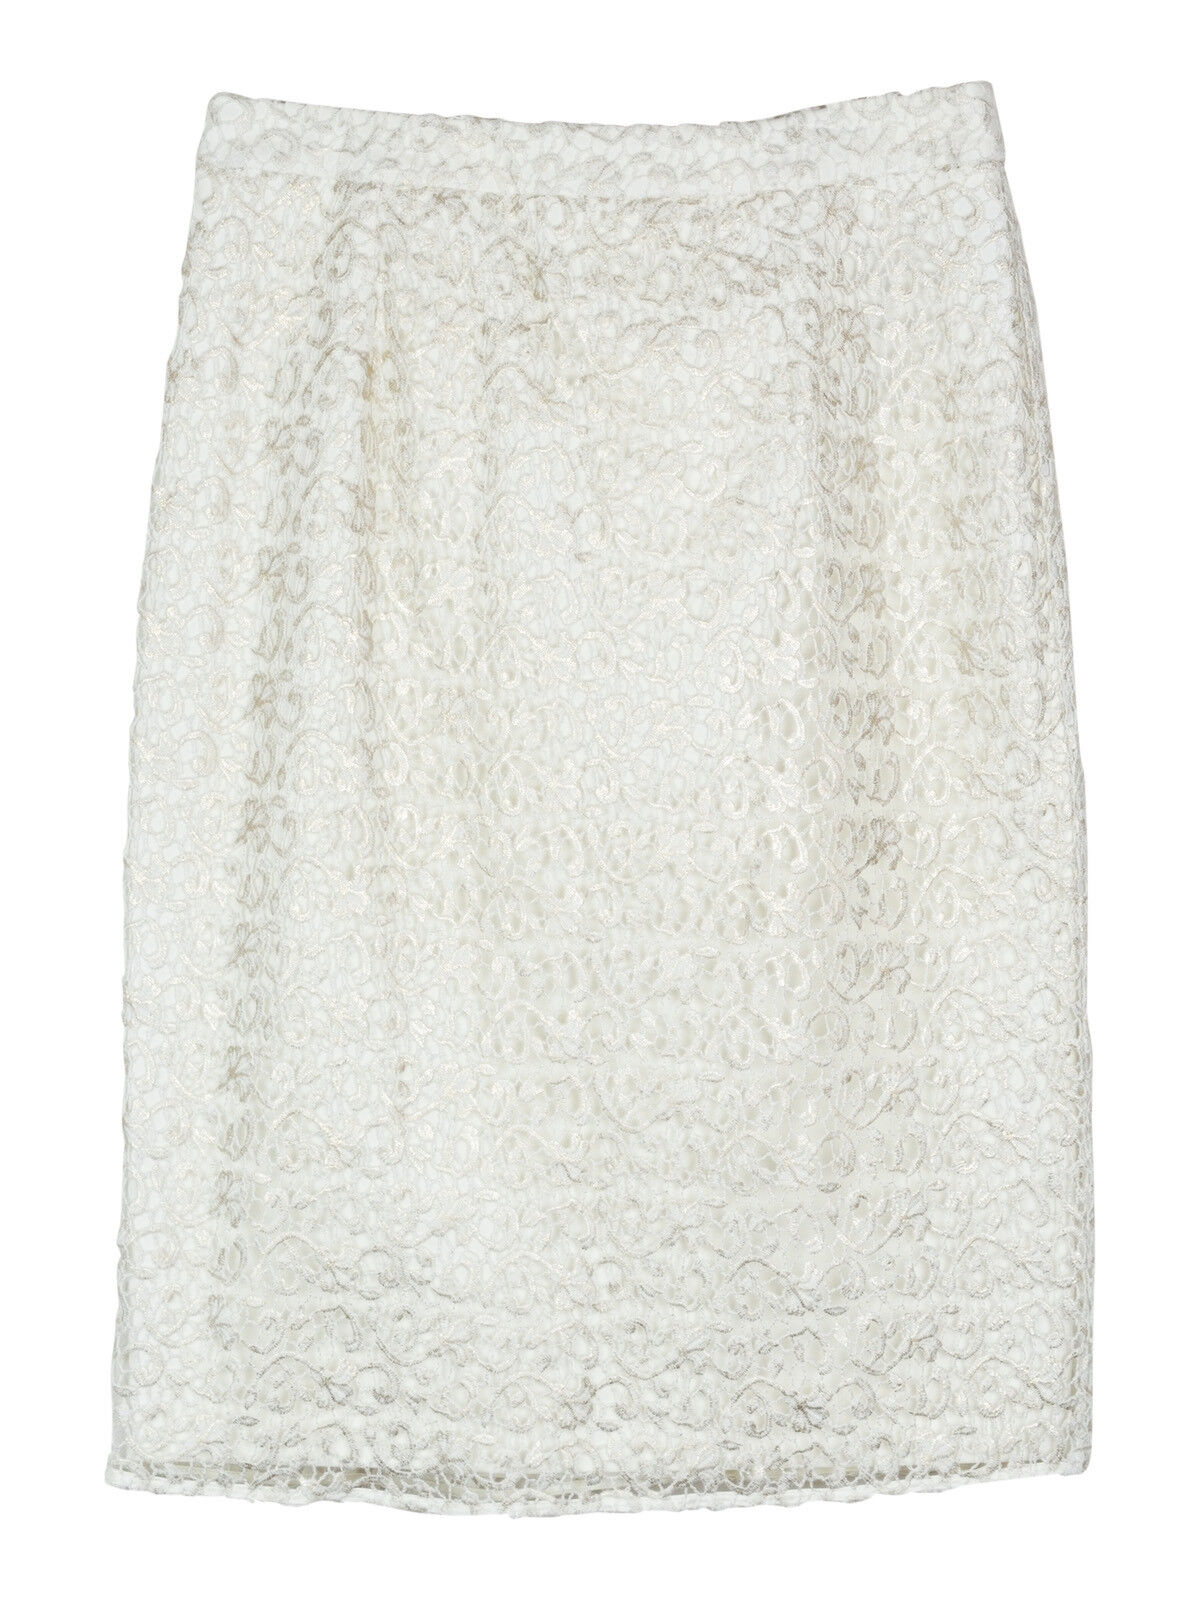 NEW Freda gold and white niamh lace pencil skirt